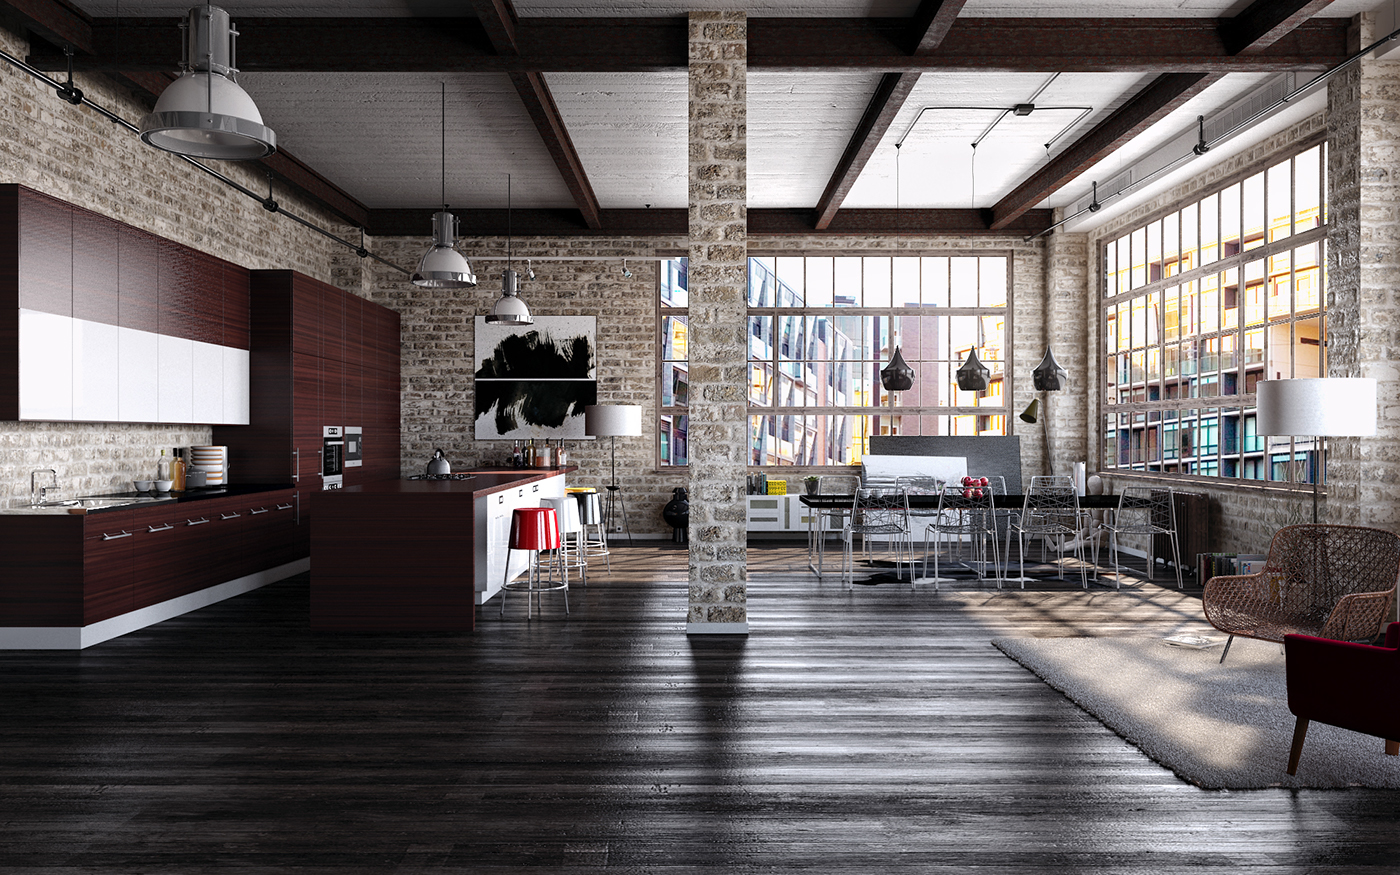 Ailid40 Appealing Industrial Loft Interior Design Today 2021 01 11